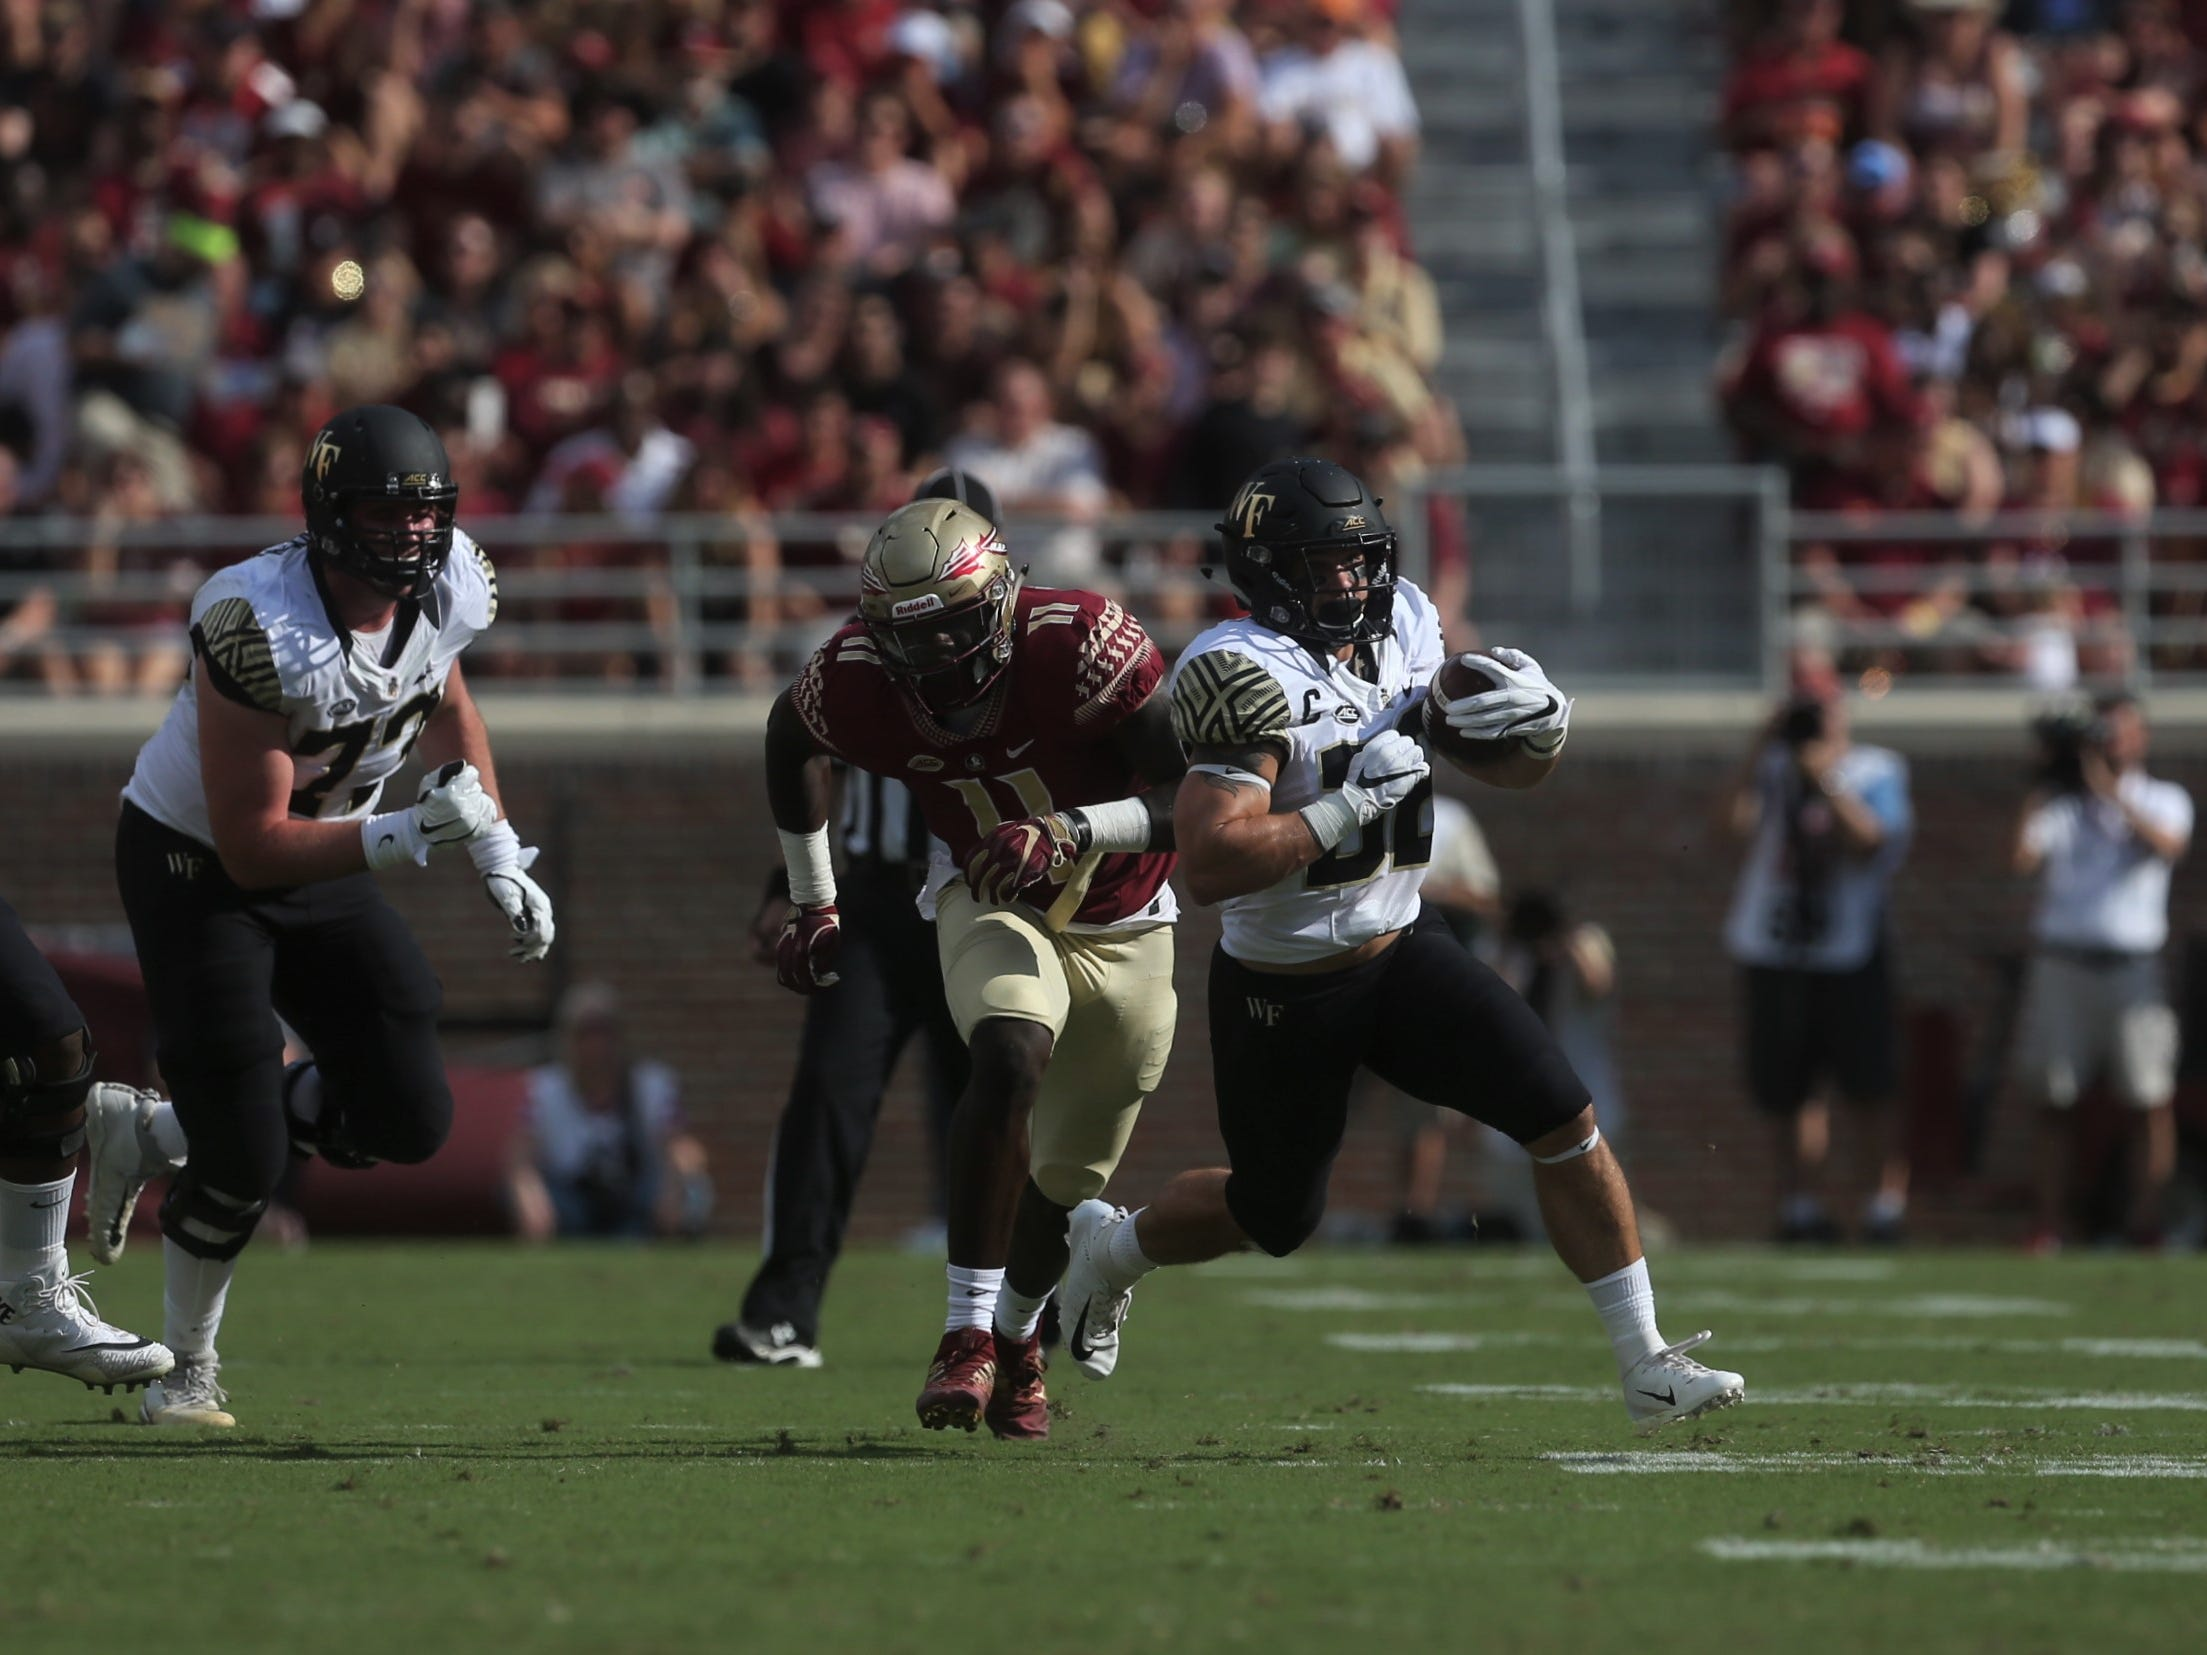 Wake Forest running back Cade Carney tries gets past Florida State defensive ned Janarius Robinson during a game at Doak Campbell Stadium on Saturday, Oct. 20, 2018.